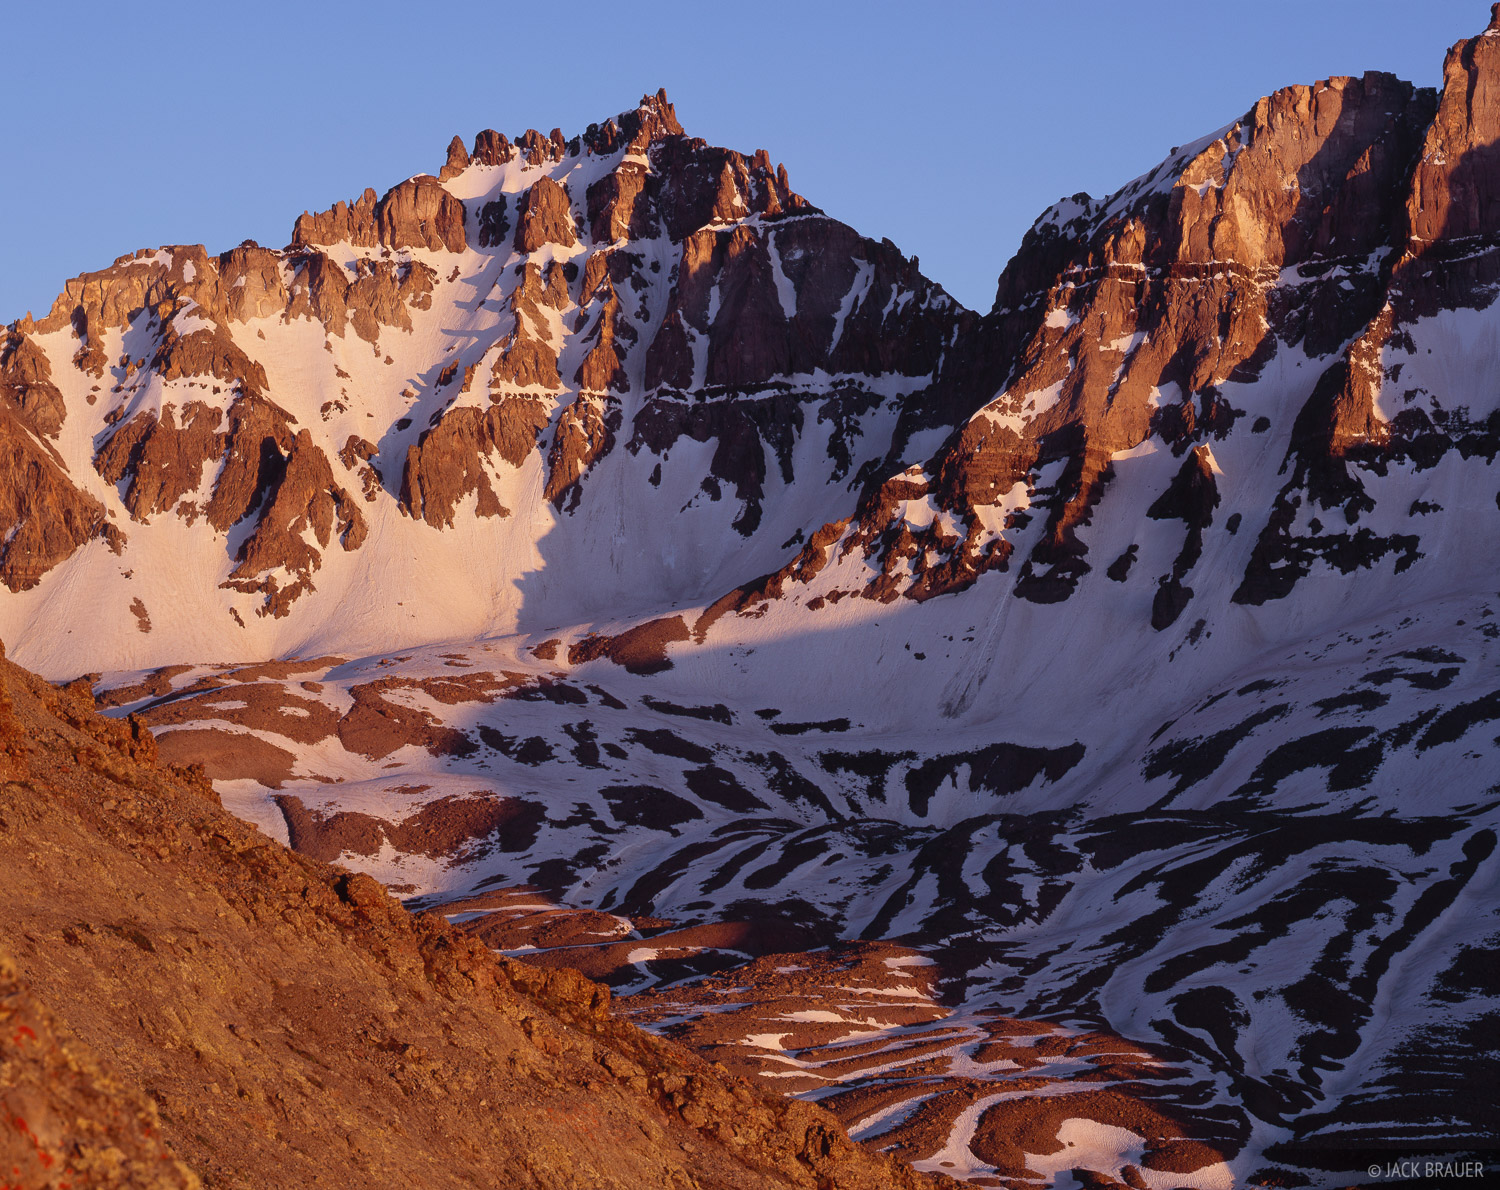 Teakettle Mountain, San Juan Mountains, Colorado, photo